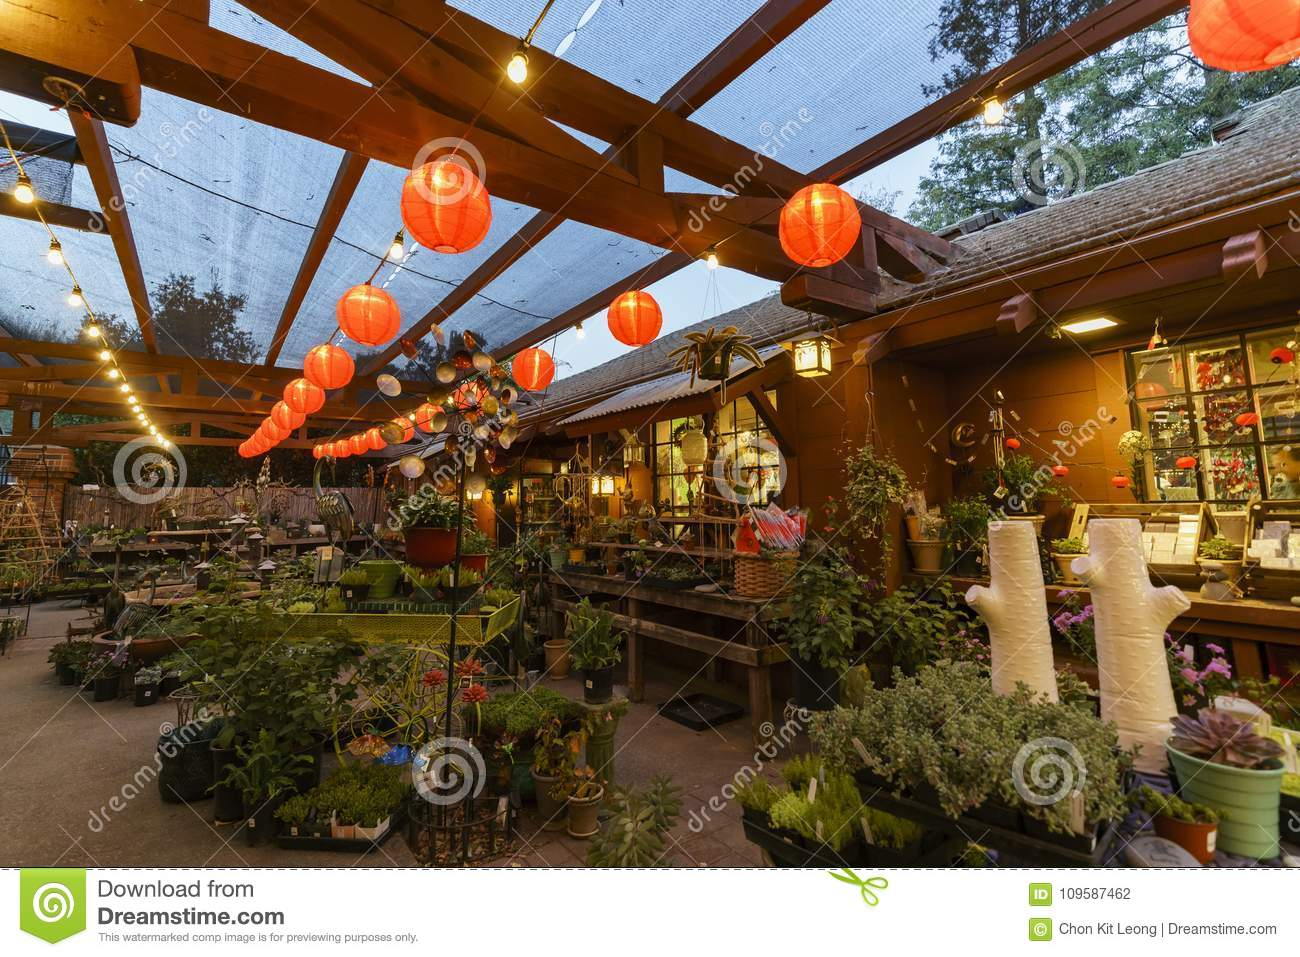 Christmas Decorated Shop In Descanso Garden Stock Photo - Image of ...